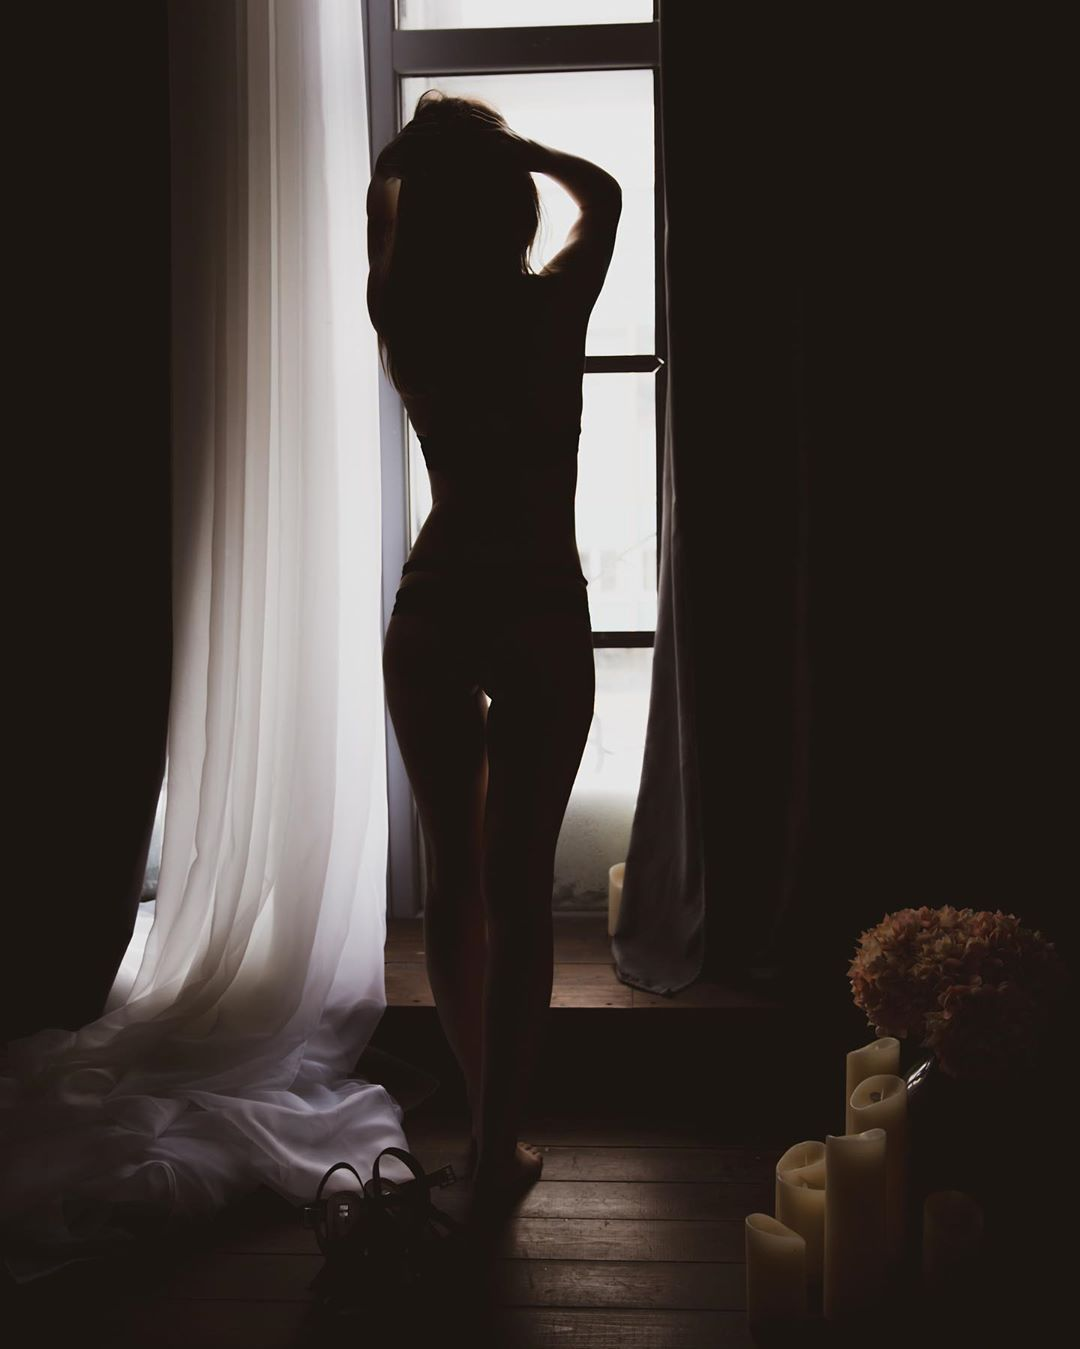 "Photo of Mihaela on Instagram: ""#canon #silhouette #girl #woman #body #hot #fire #black #shadows #light #window #romantic #sexy #atmosphere"""